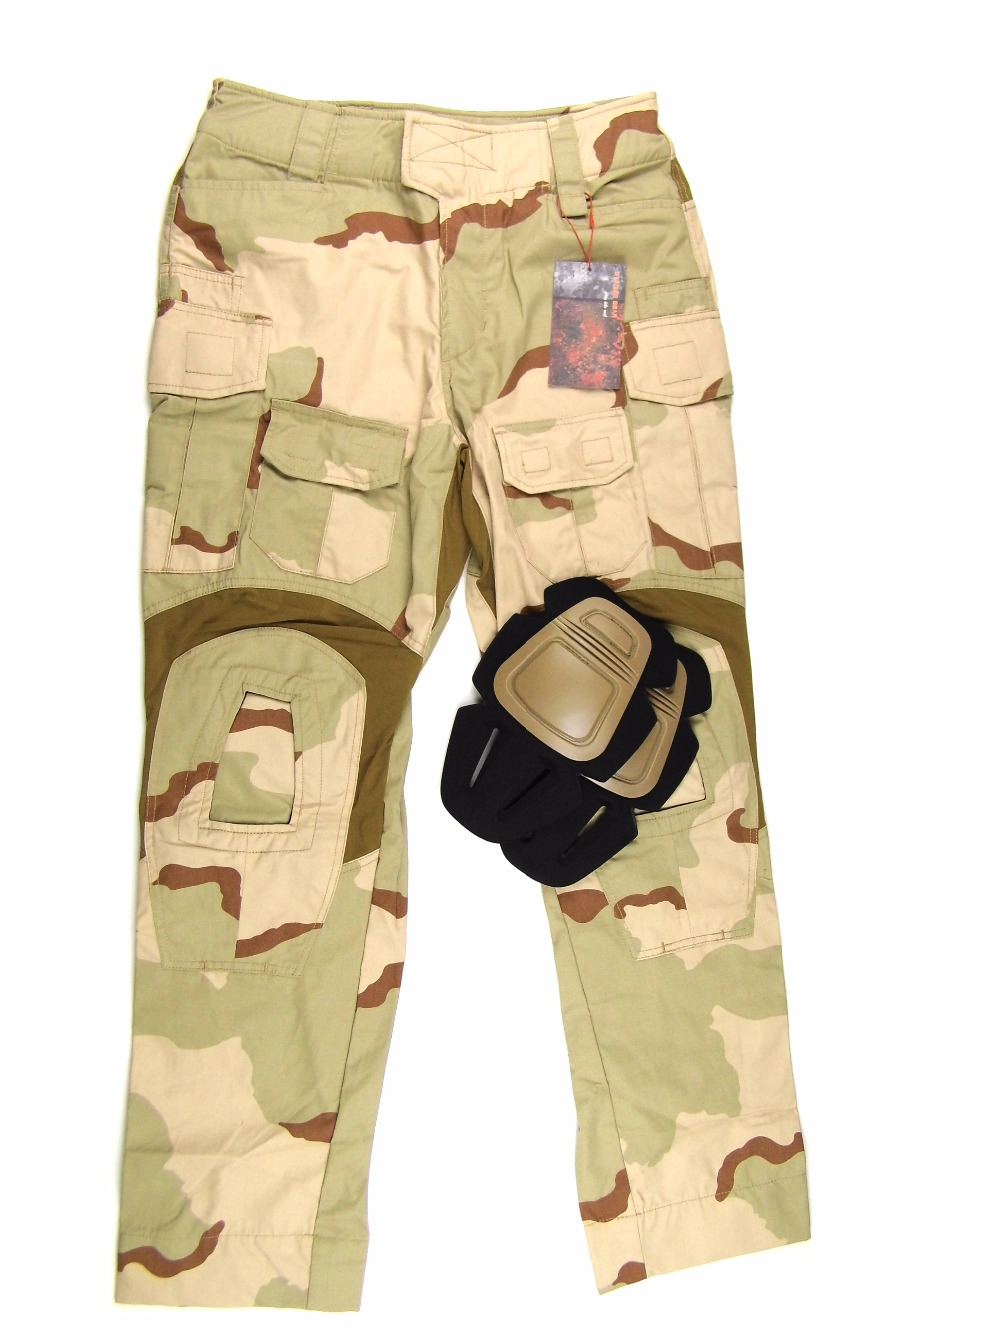 Stinger Gear Dcu G3 Combat Pants Nyco Ripstop Desert Camouflage